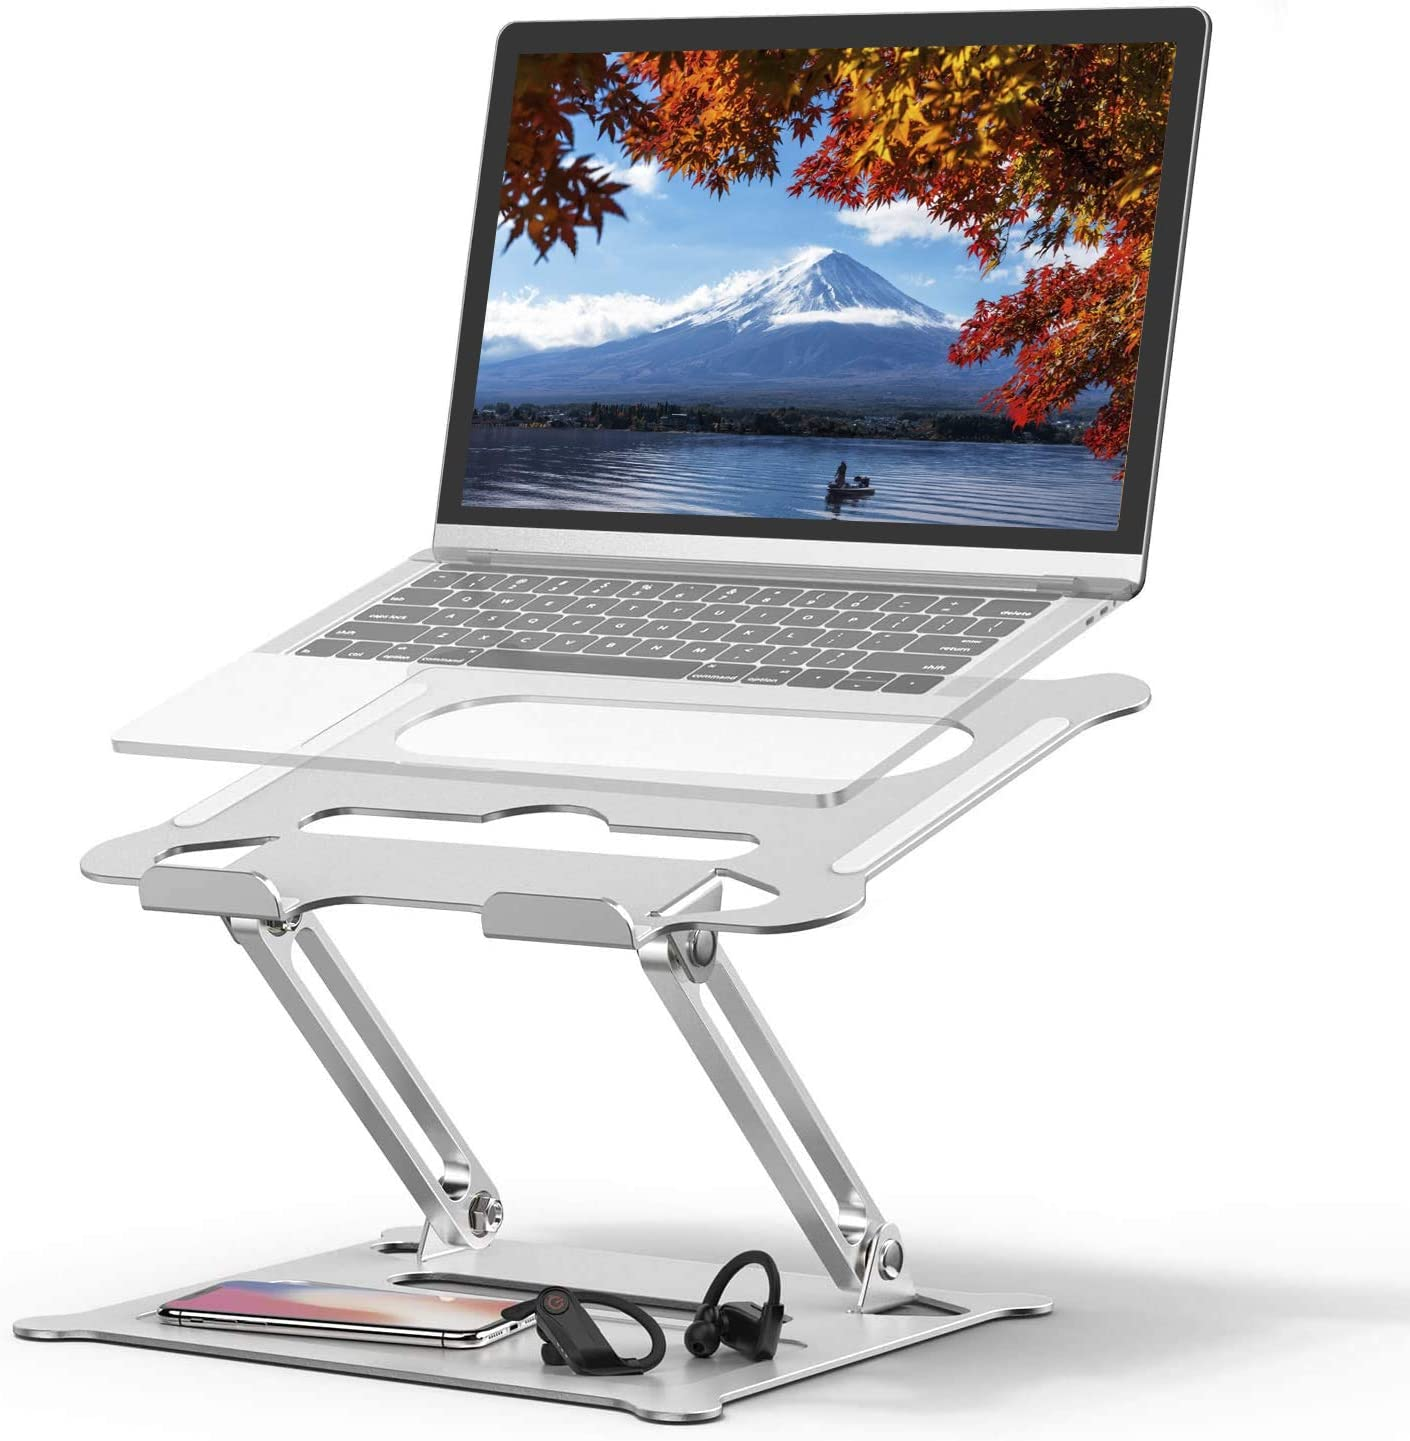 """Laptop Stand Holder, Ergonomic Adjustable Notebook Stand Riser with Vents, Portable Foldable Stand with MacBook Air Pro, Dell, HP, Lenovo Light Weight Aluminum Up to 17""""(Silver)"""